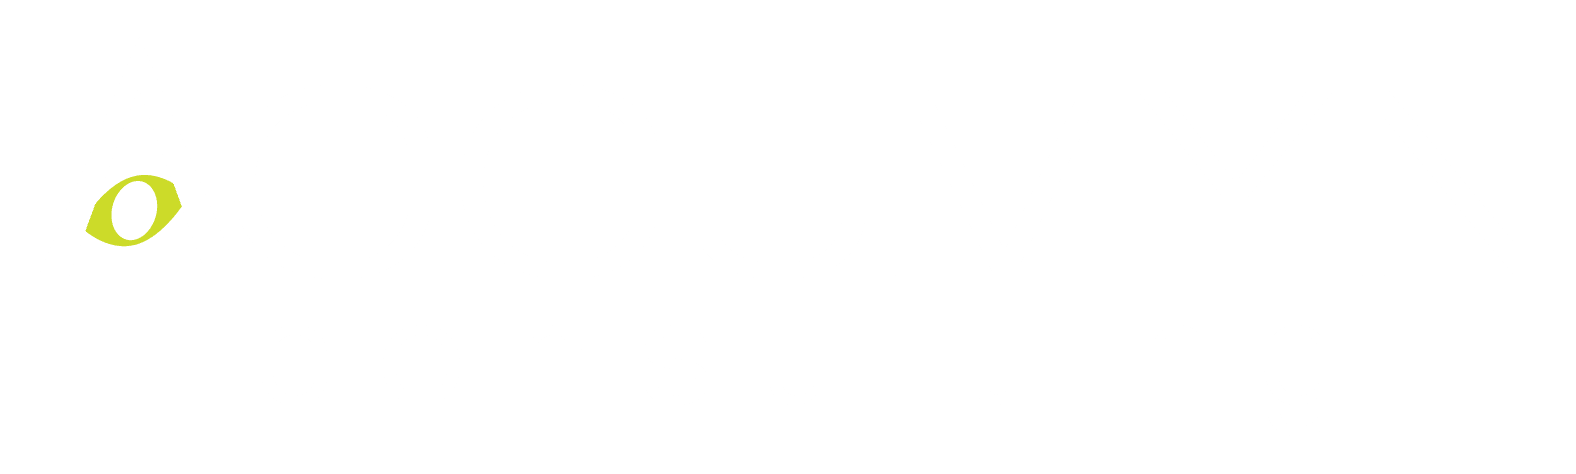 Accumyn Consulting